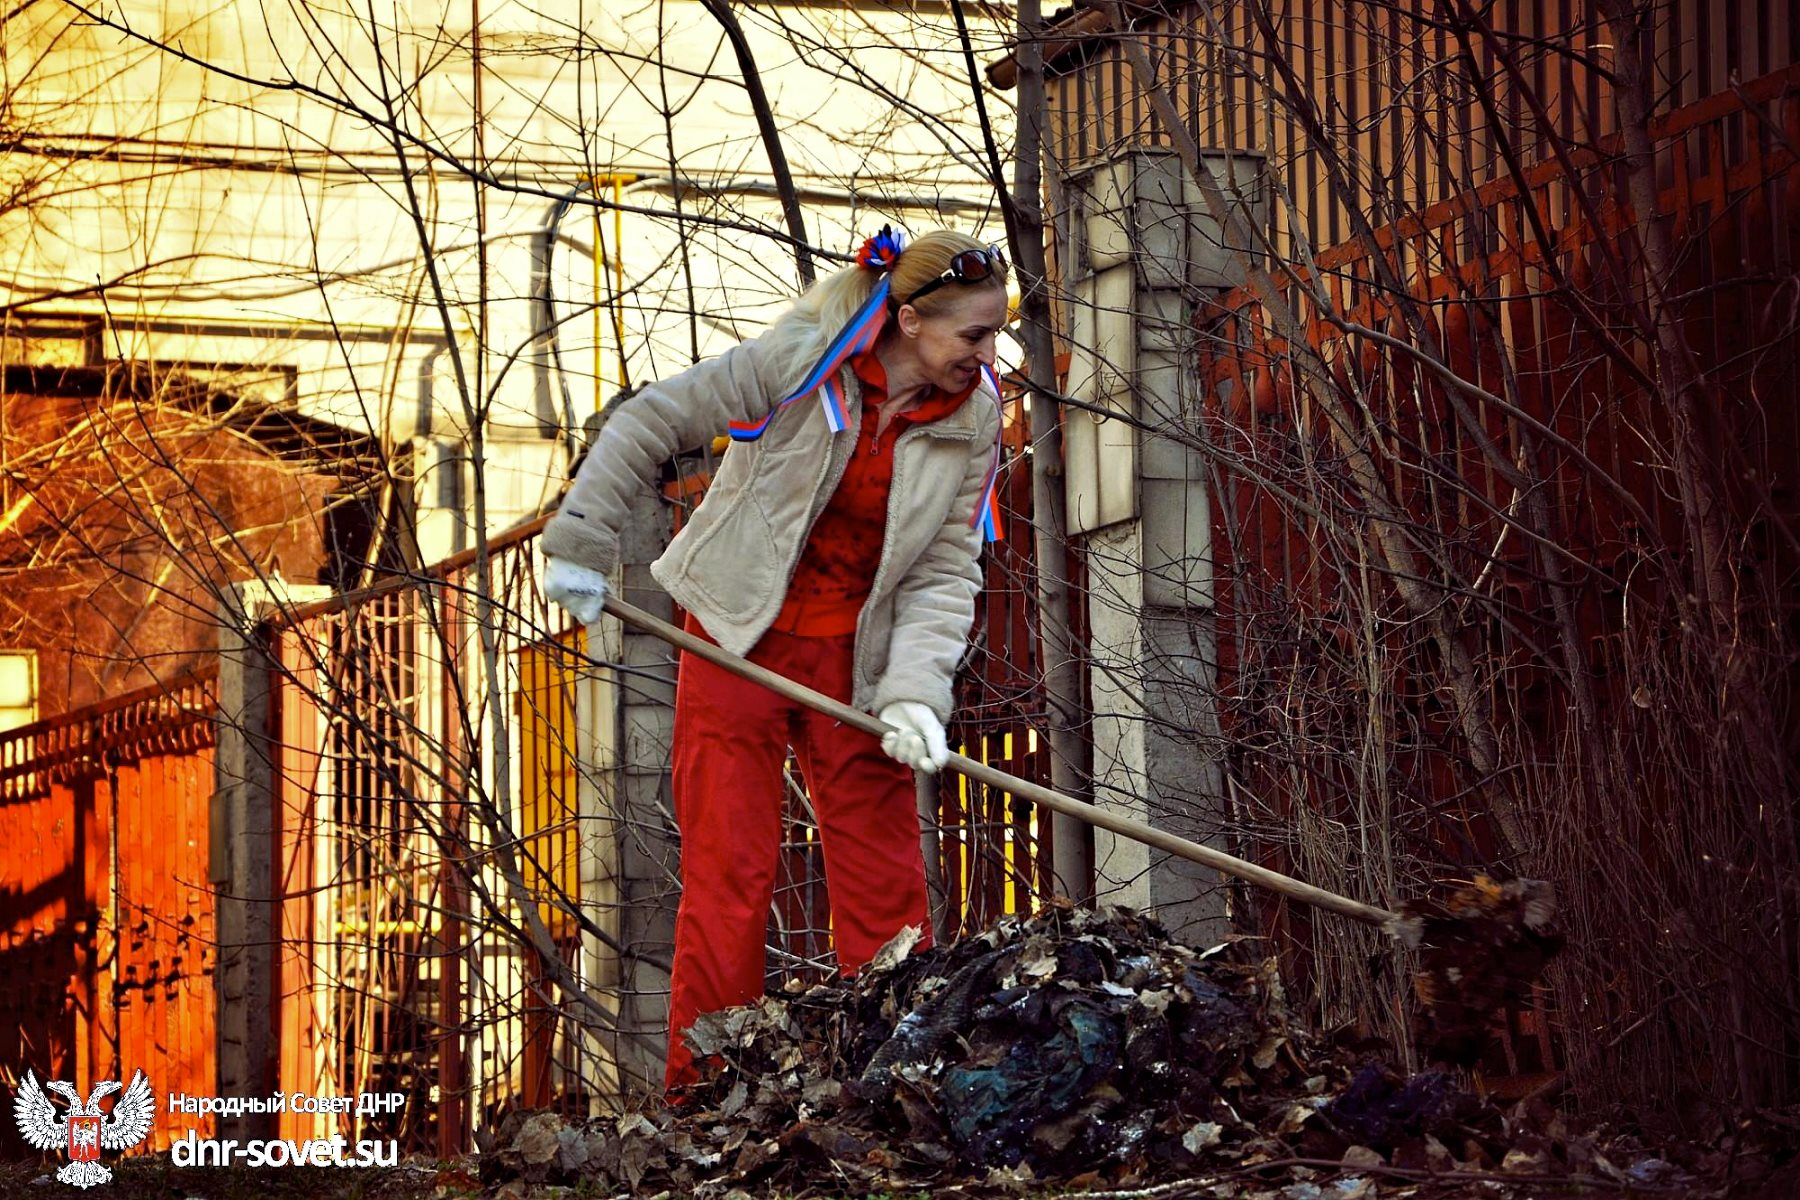 00 subbotnik cleanup in Donetsk. 22.03.15